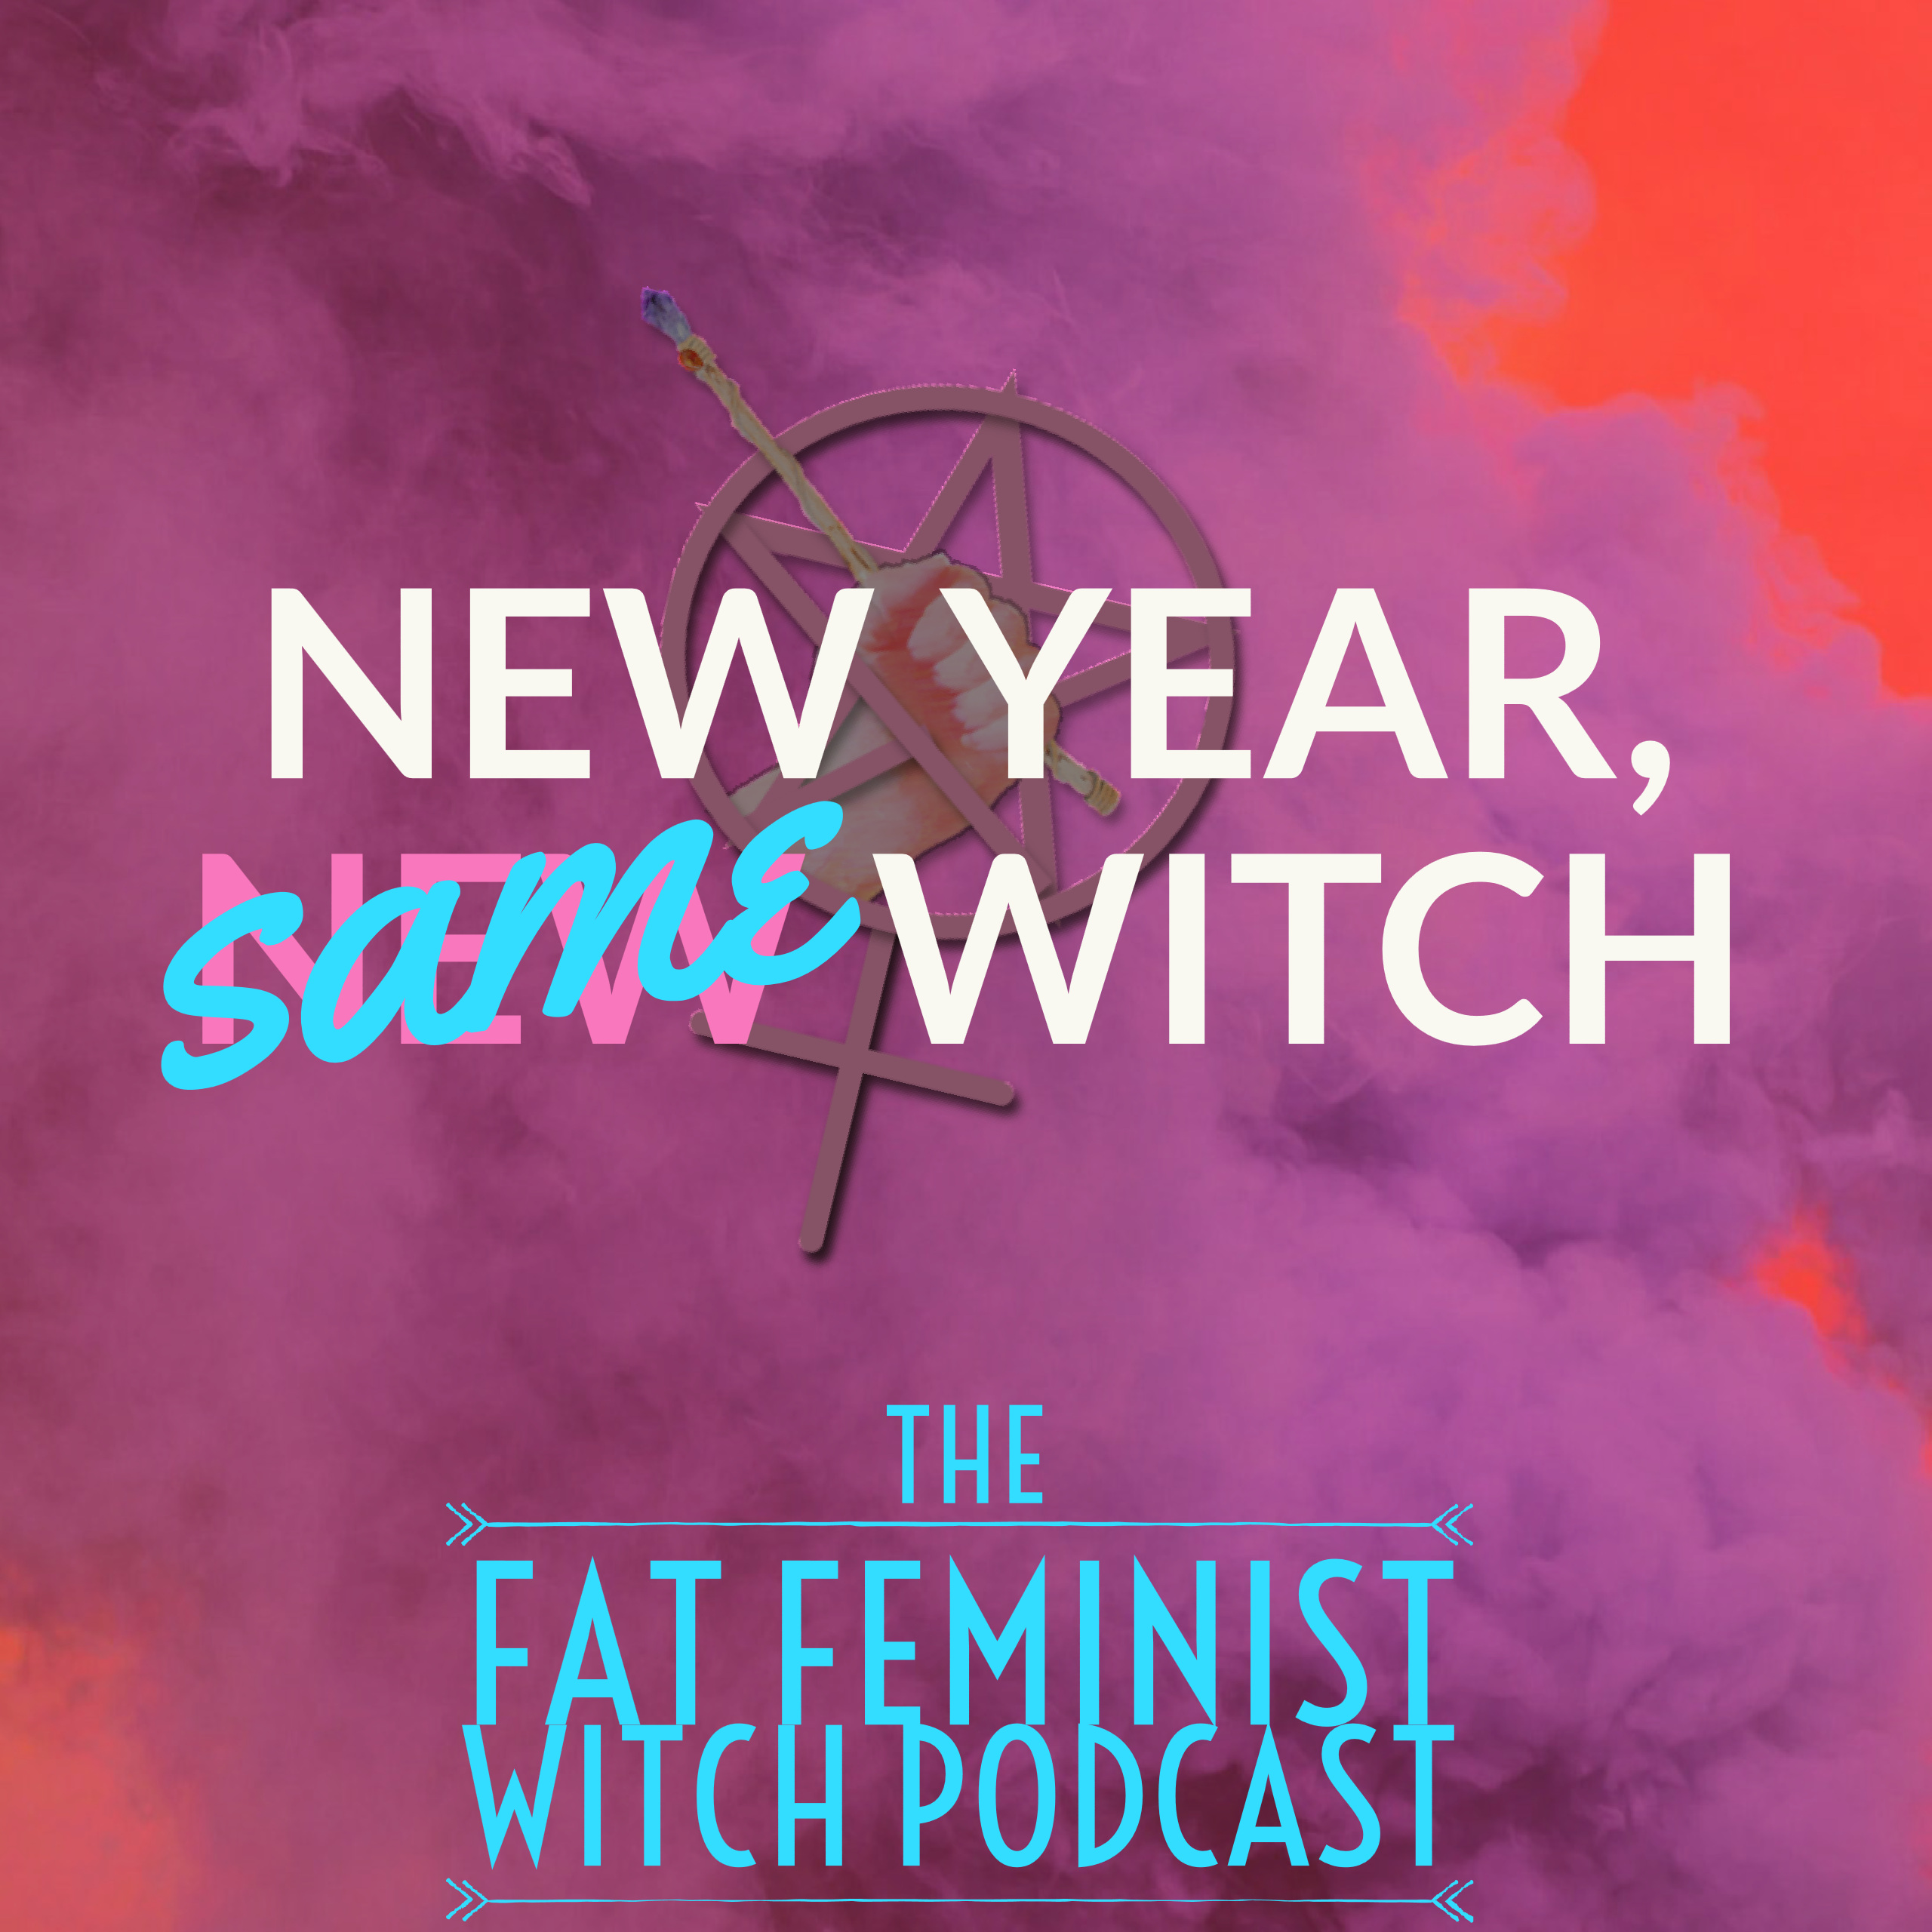 Episode 22 - #WitchNBitch: How White Witches Talk About Black Magick